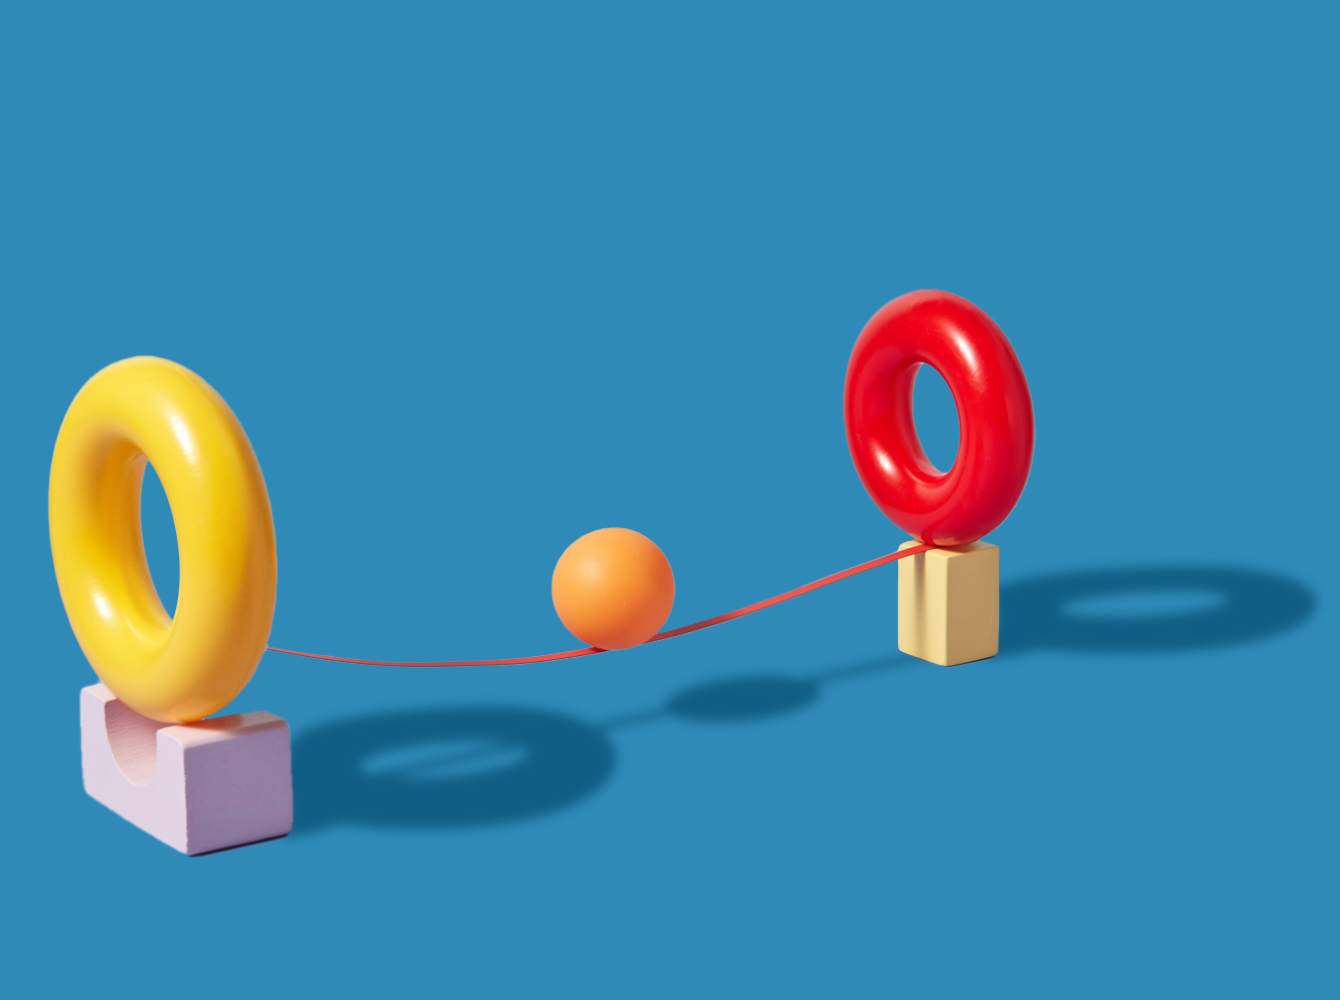 Ball balancing on string between two objects representing teamwork